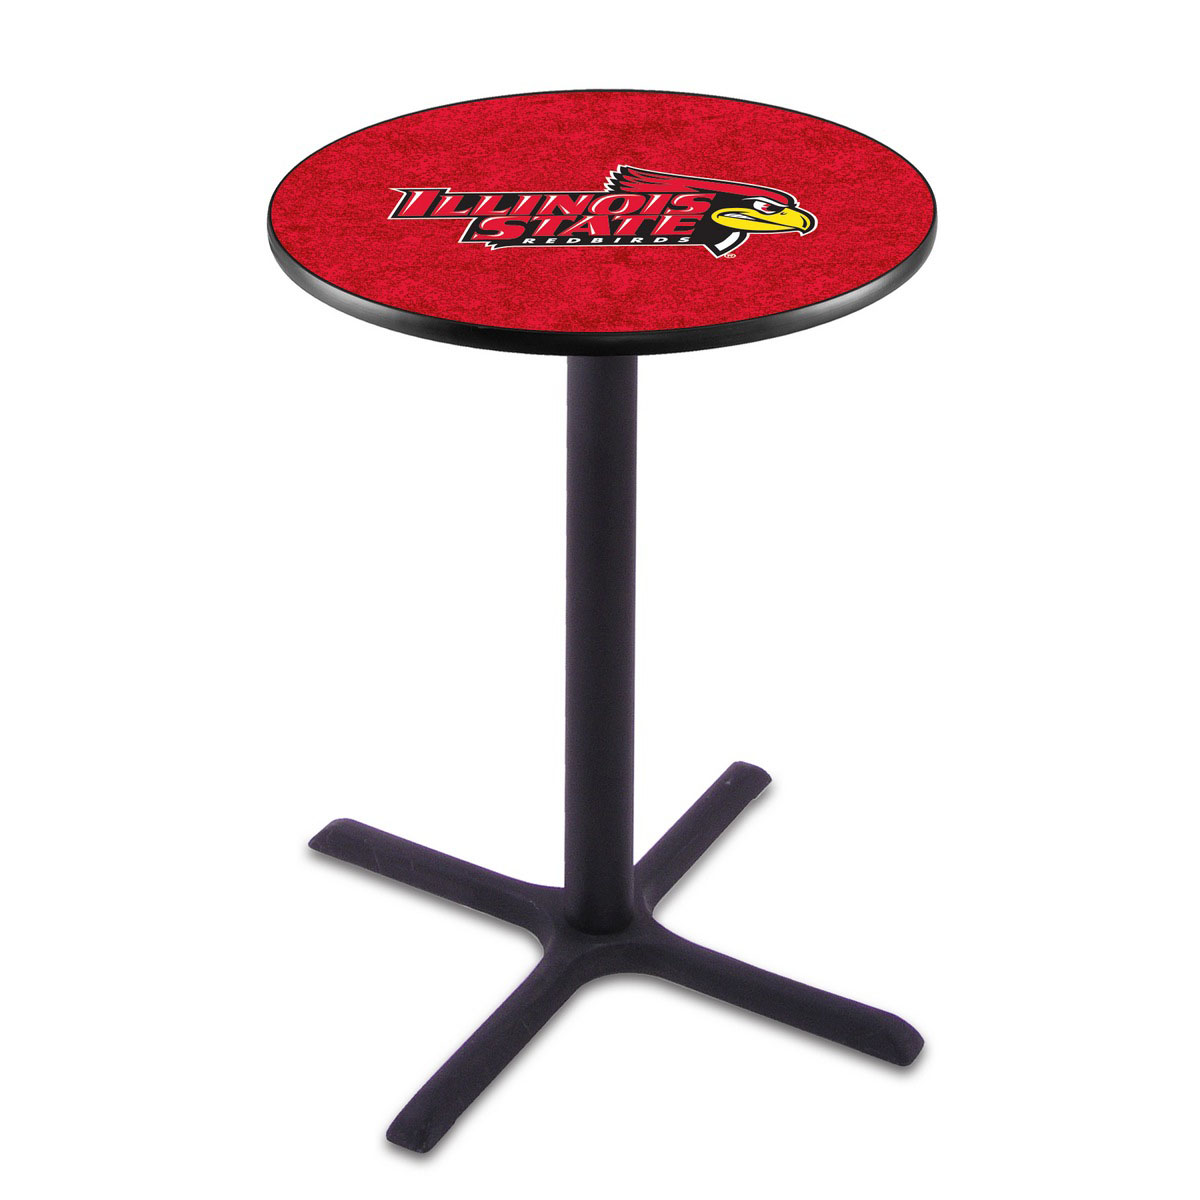 Excellent Illinois State Wrinkle Pub Table Product Photo